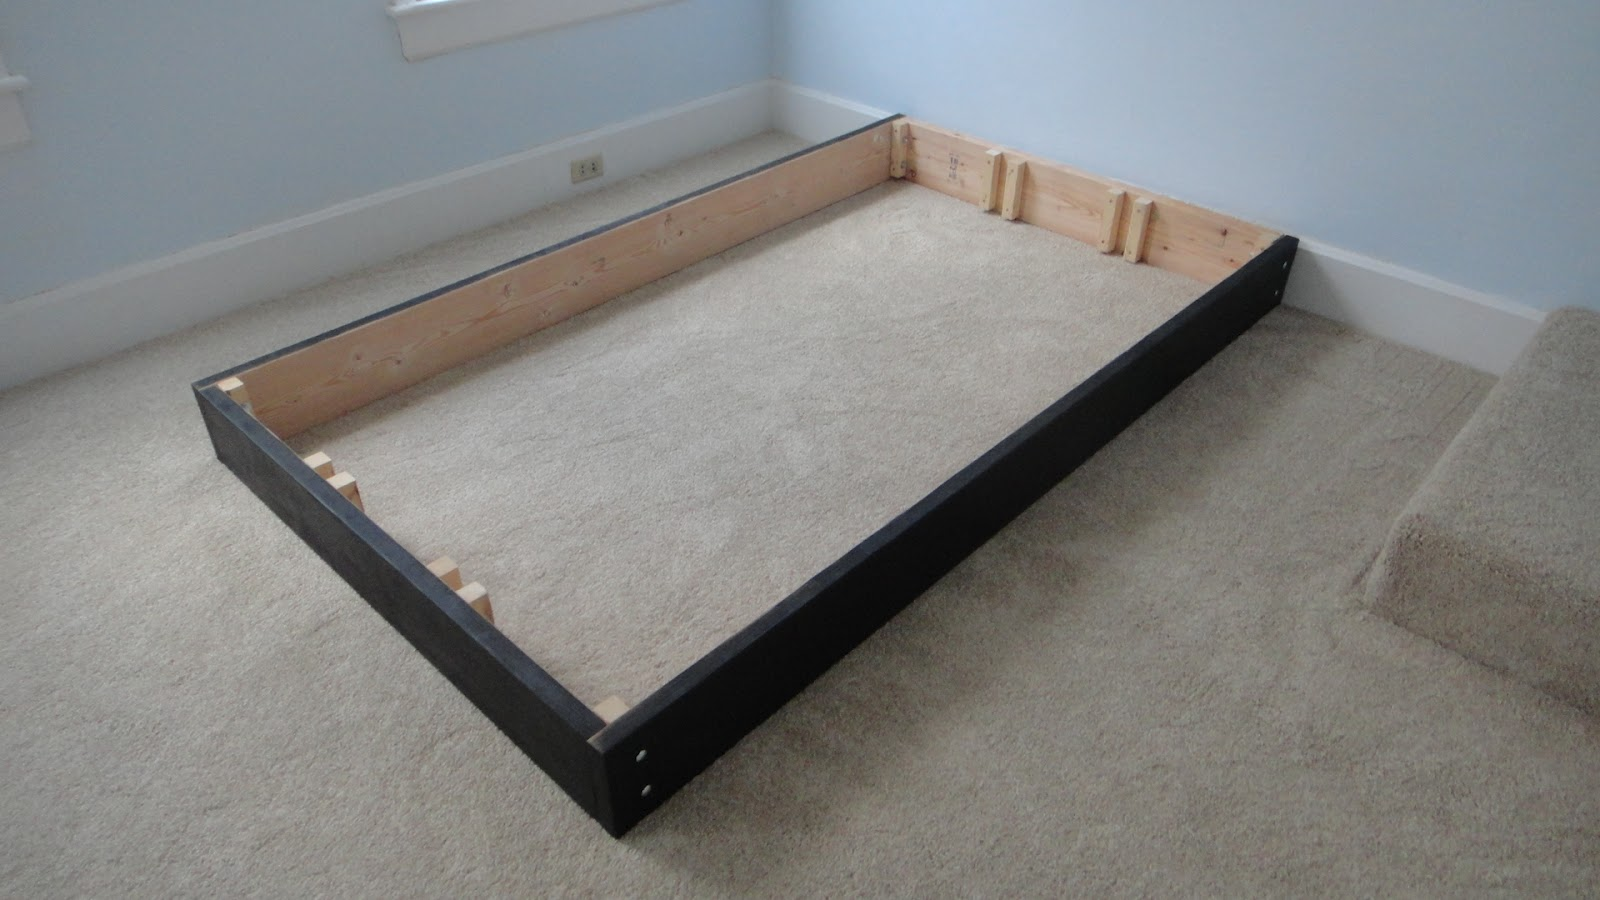 Build A Platform Bed With Drawers | Search Results | DIY Woodworking ...